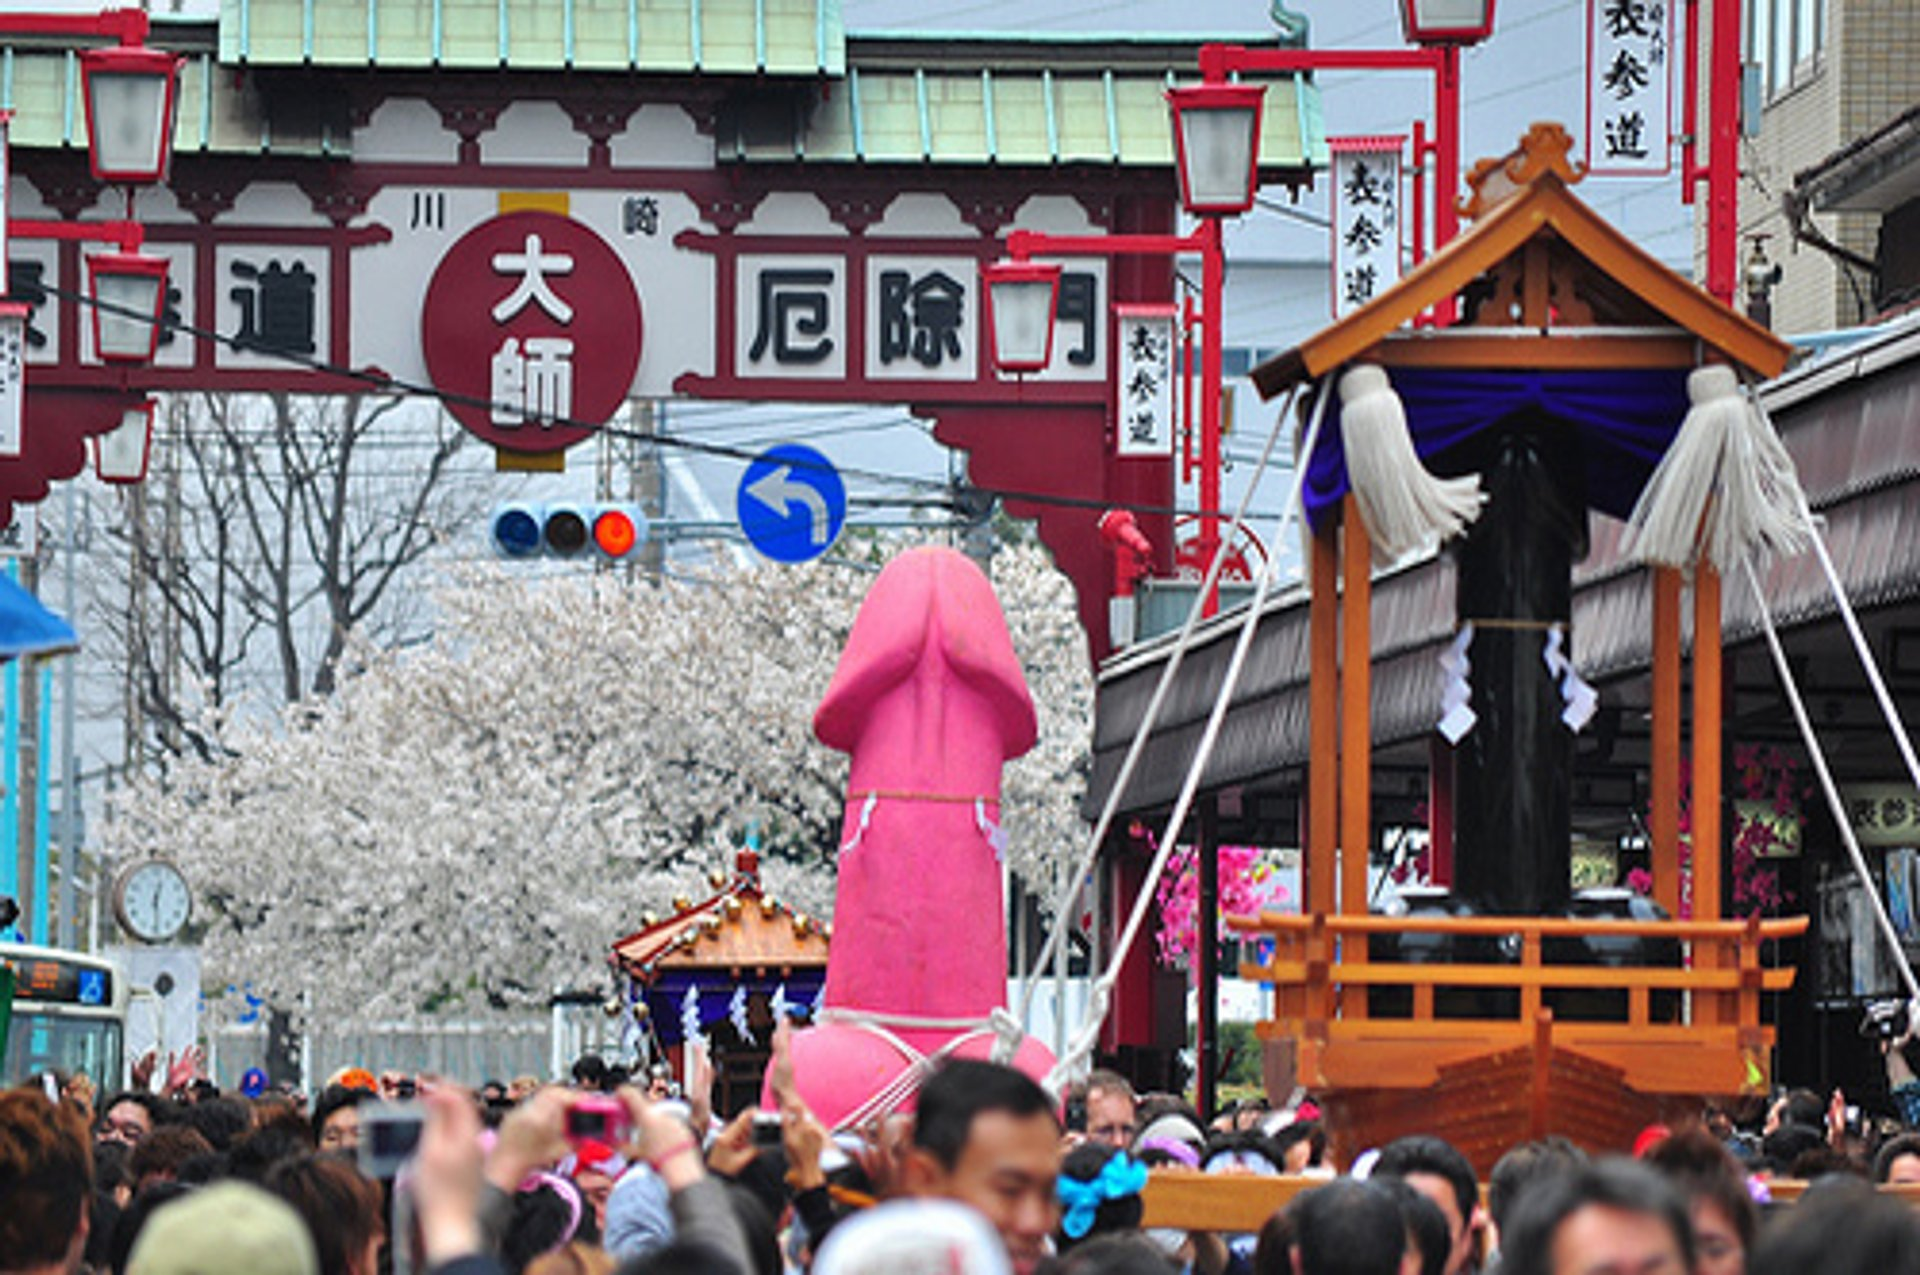 Kanamara Matsuri in Japan 2020 - Best Time